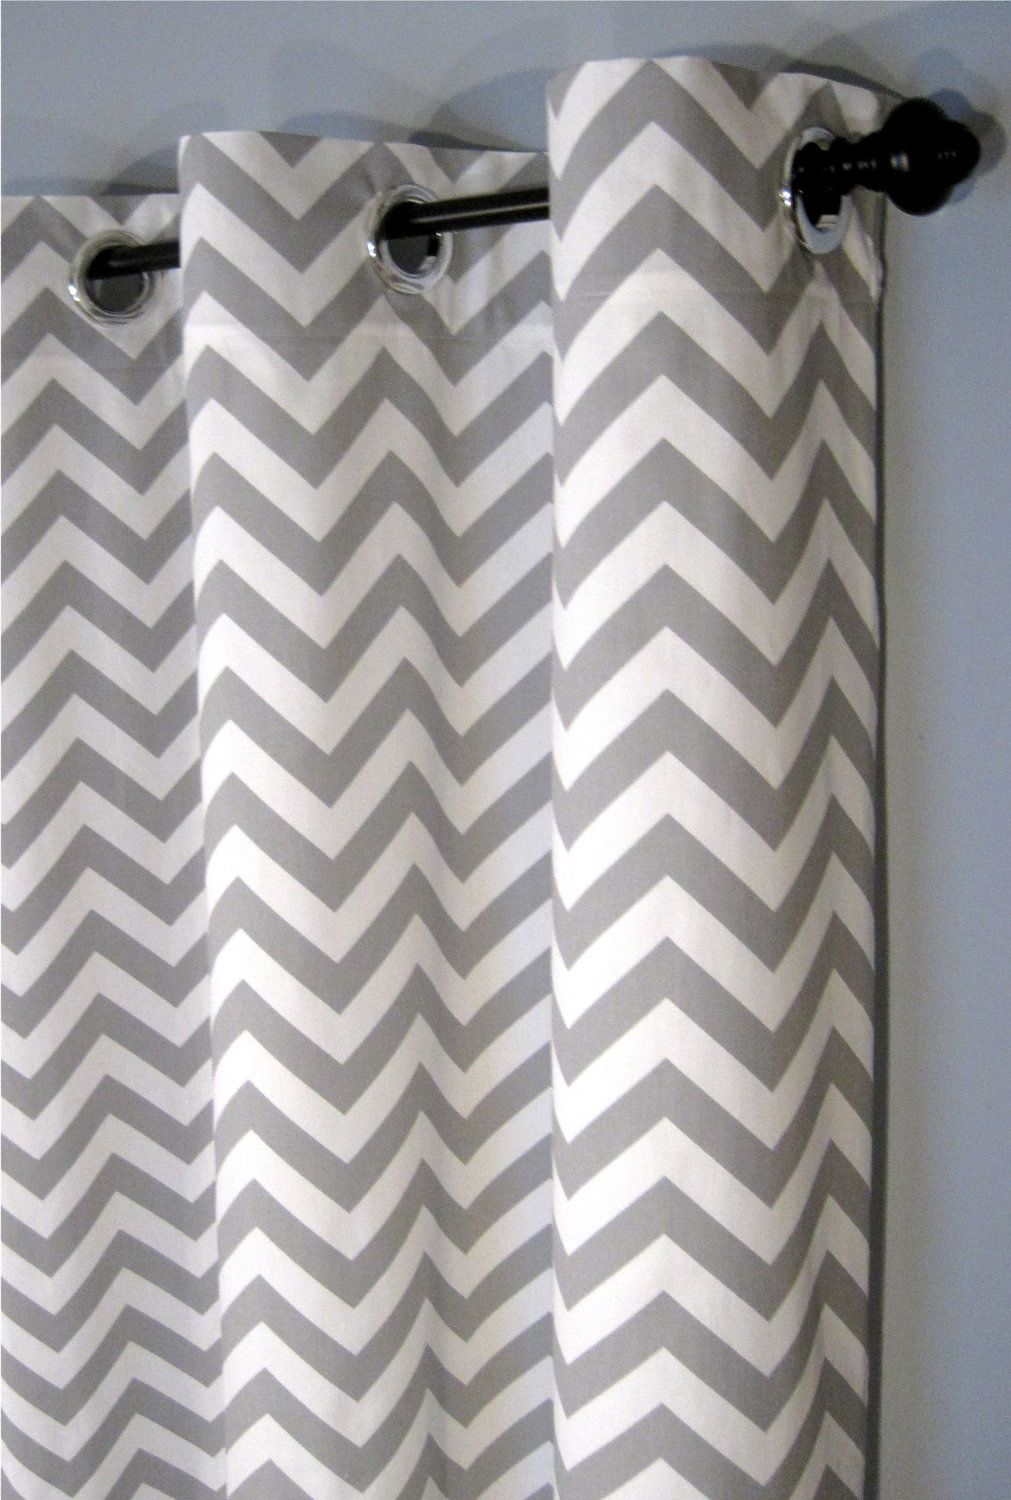 84 Grey Zig Zag Grommet Curtains Two Chevron Curtain Panels 50 X84 Chevron Curtains And